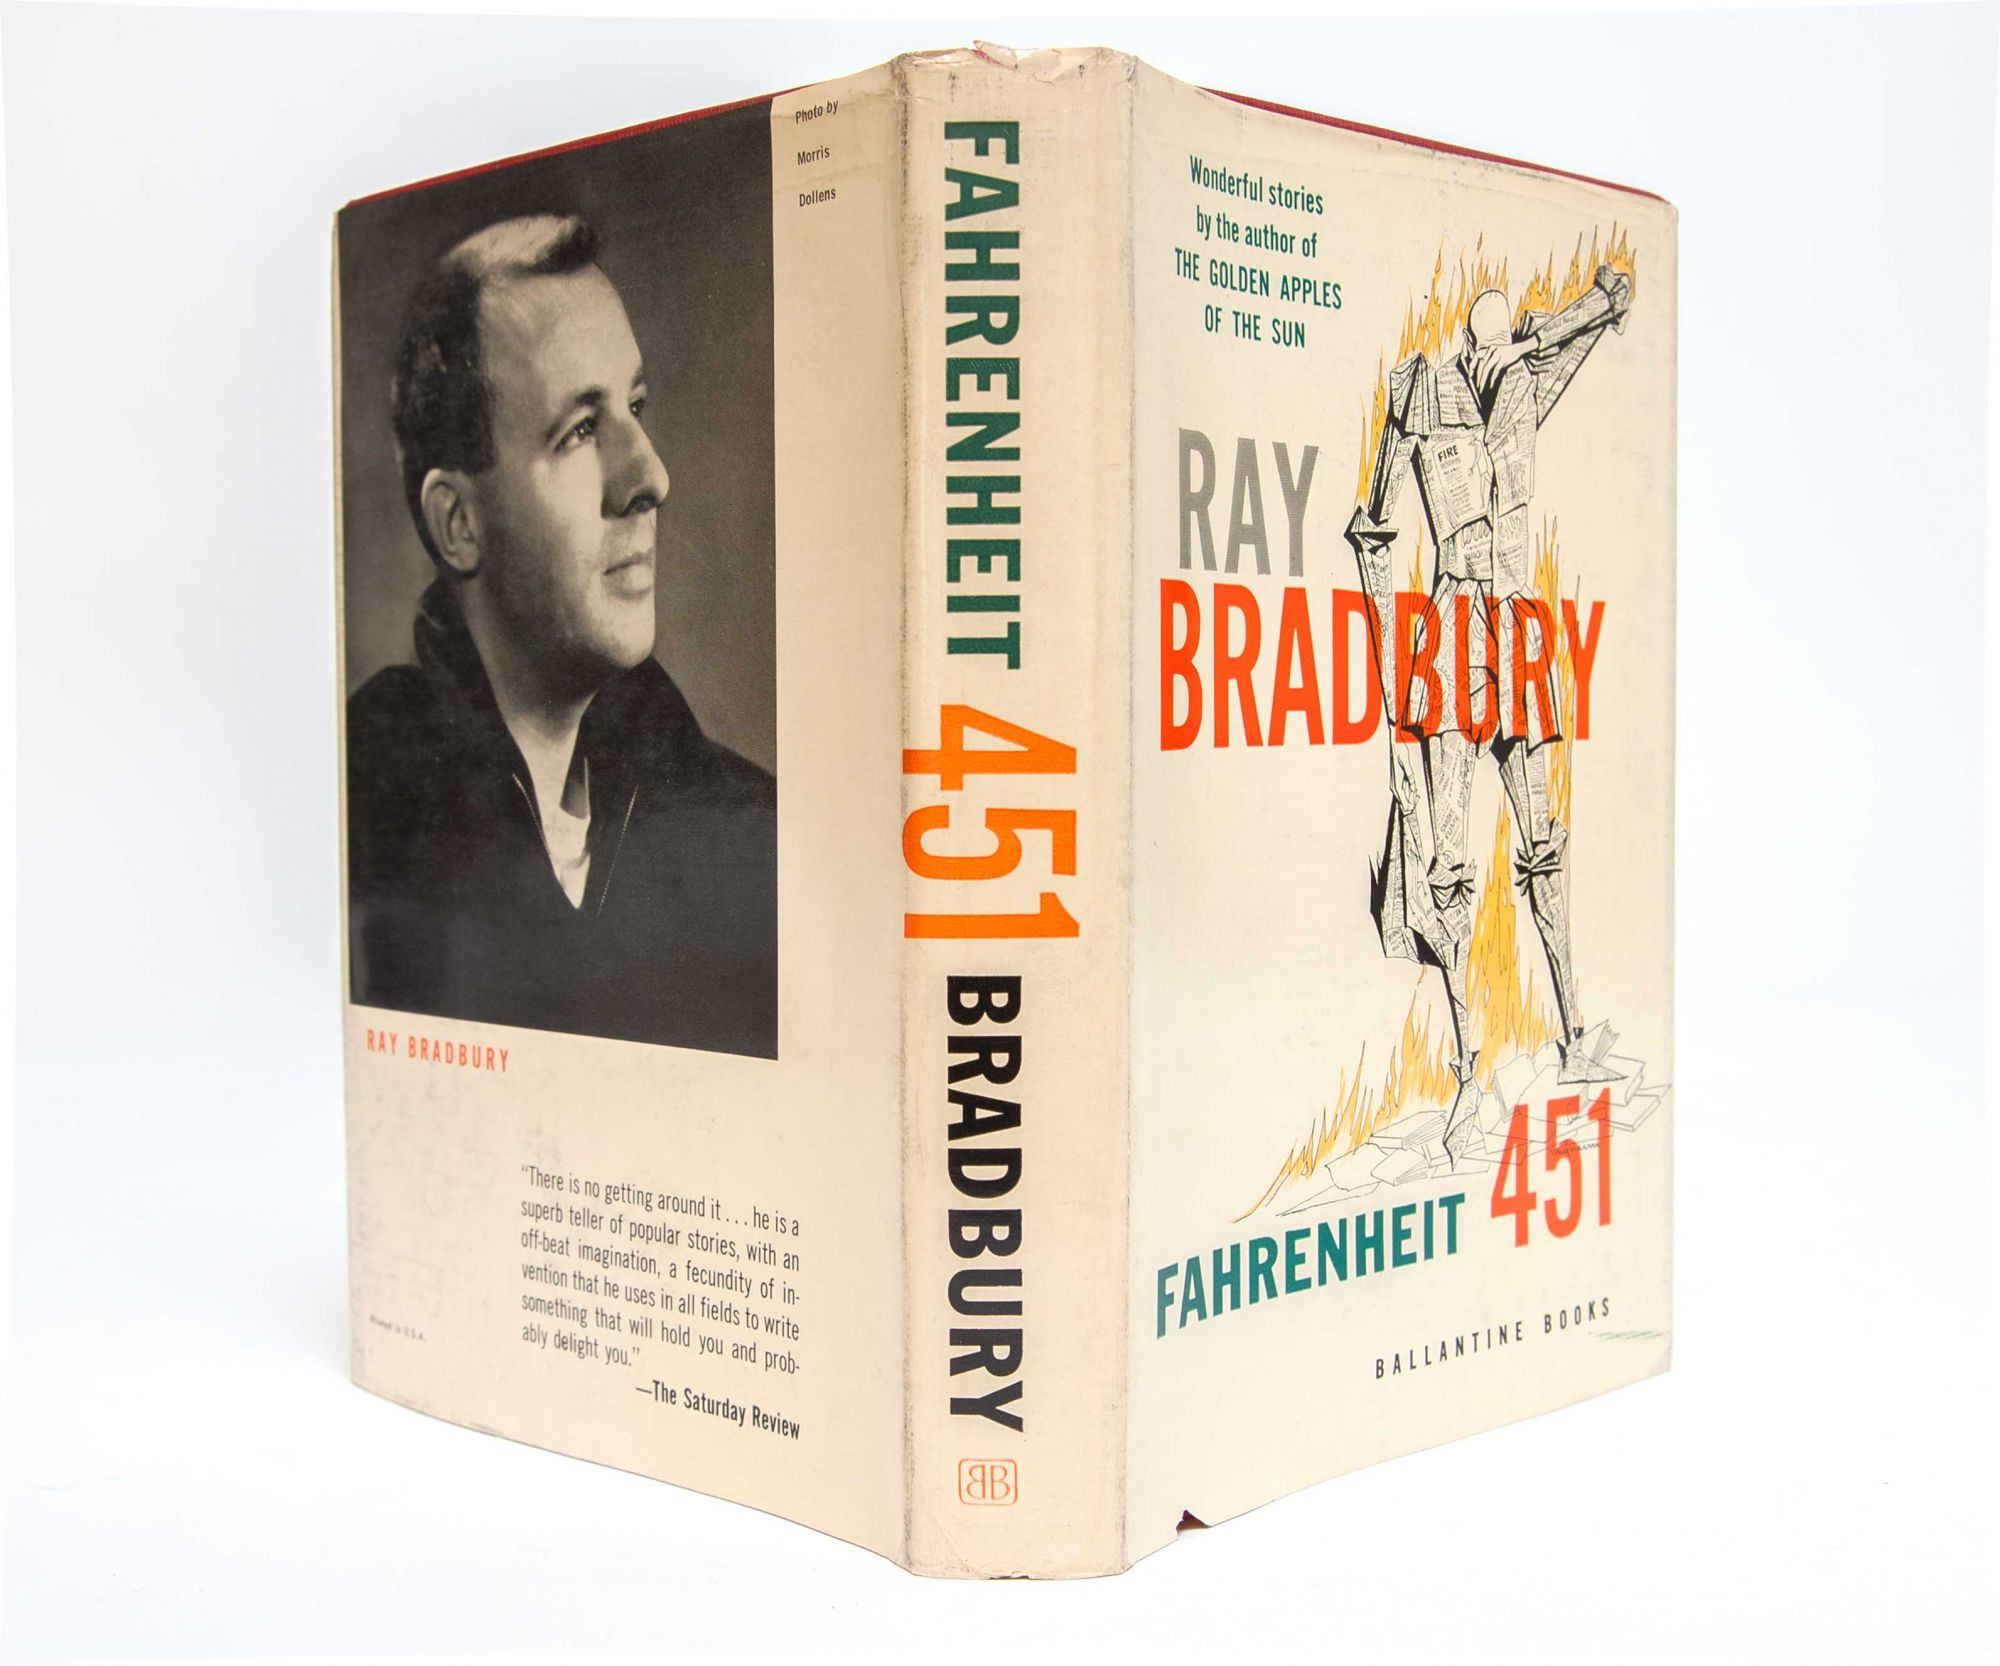 fahrenheit 451 power of books Ray bradbury fahrenheit 451 ray bradbury's internationally acclaimed novel fahrenheit 451  the printed book, along with the houses in which they are hidden.